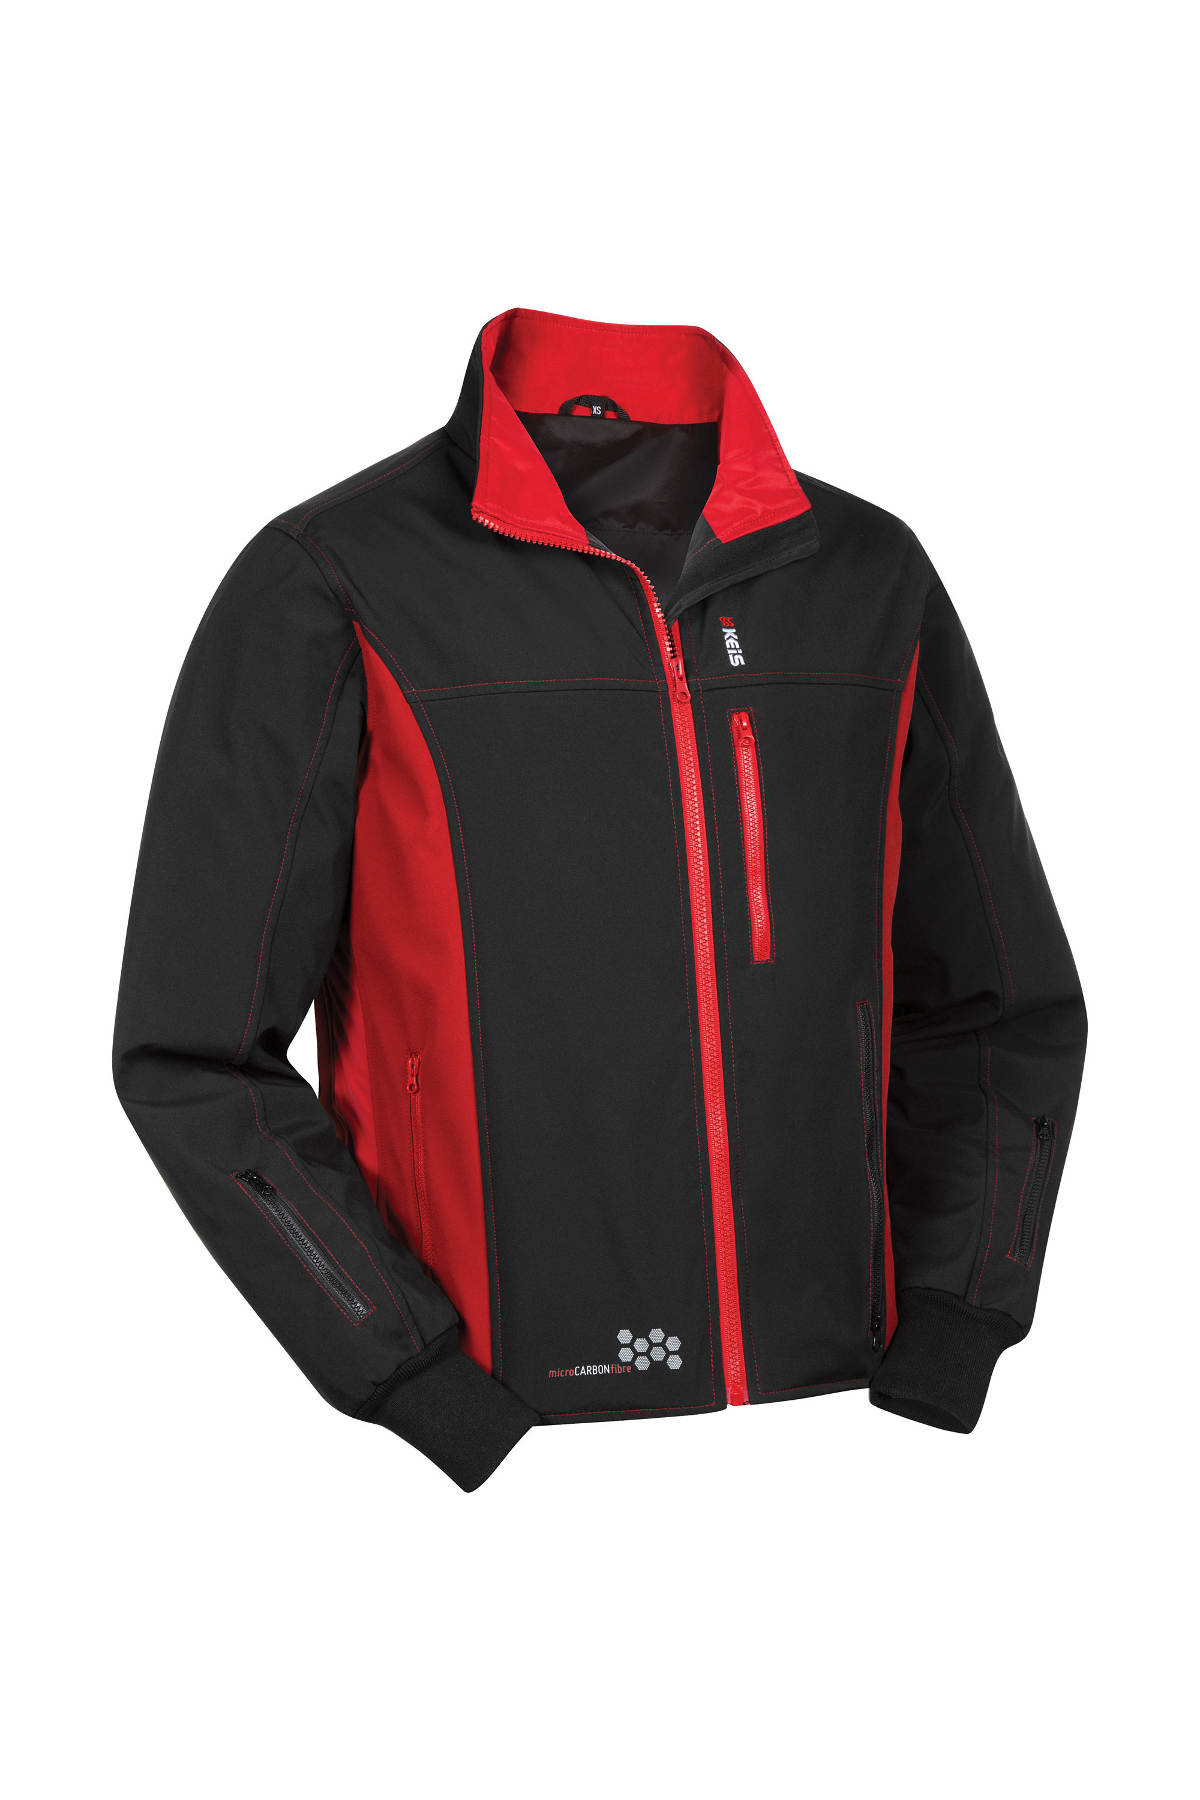 Keis Premium J501 Heated Jacket Angled